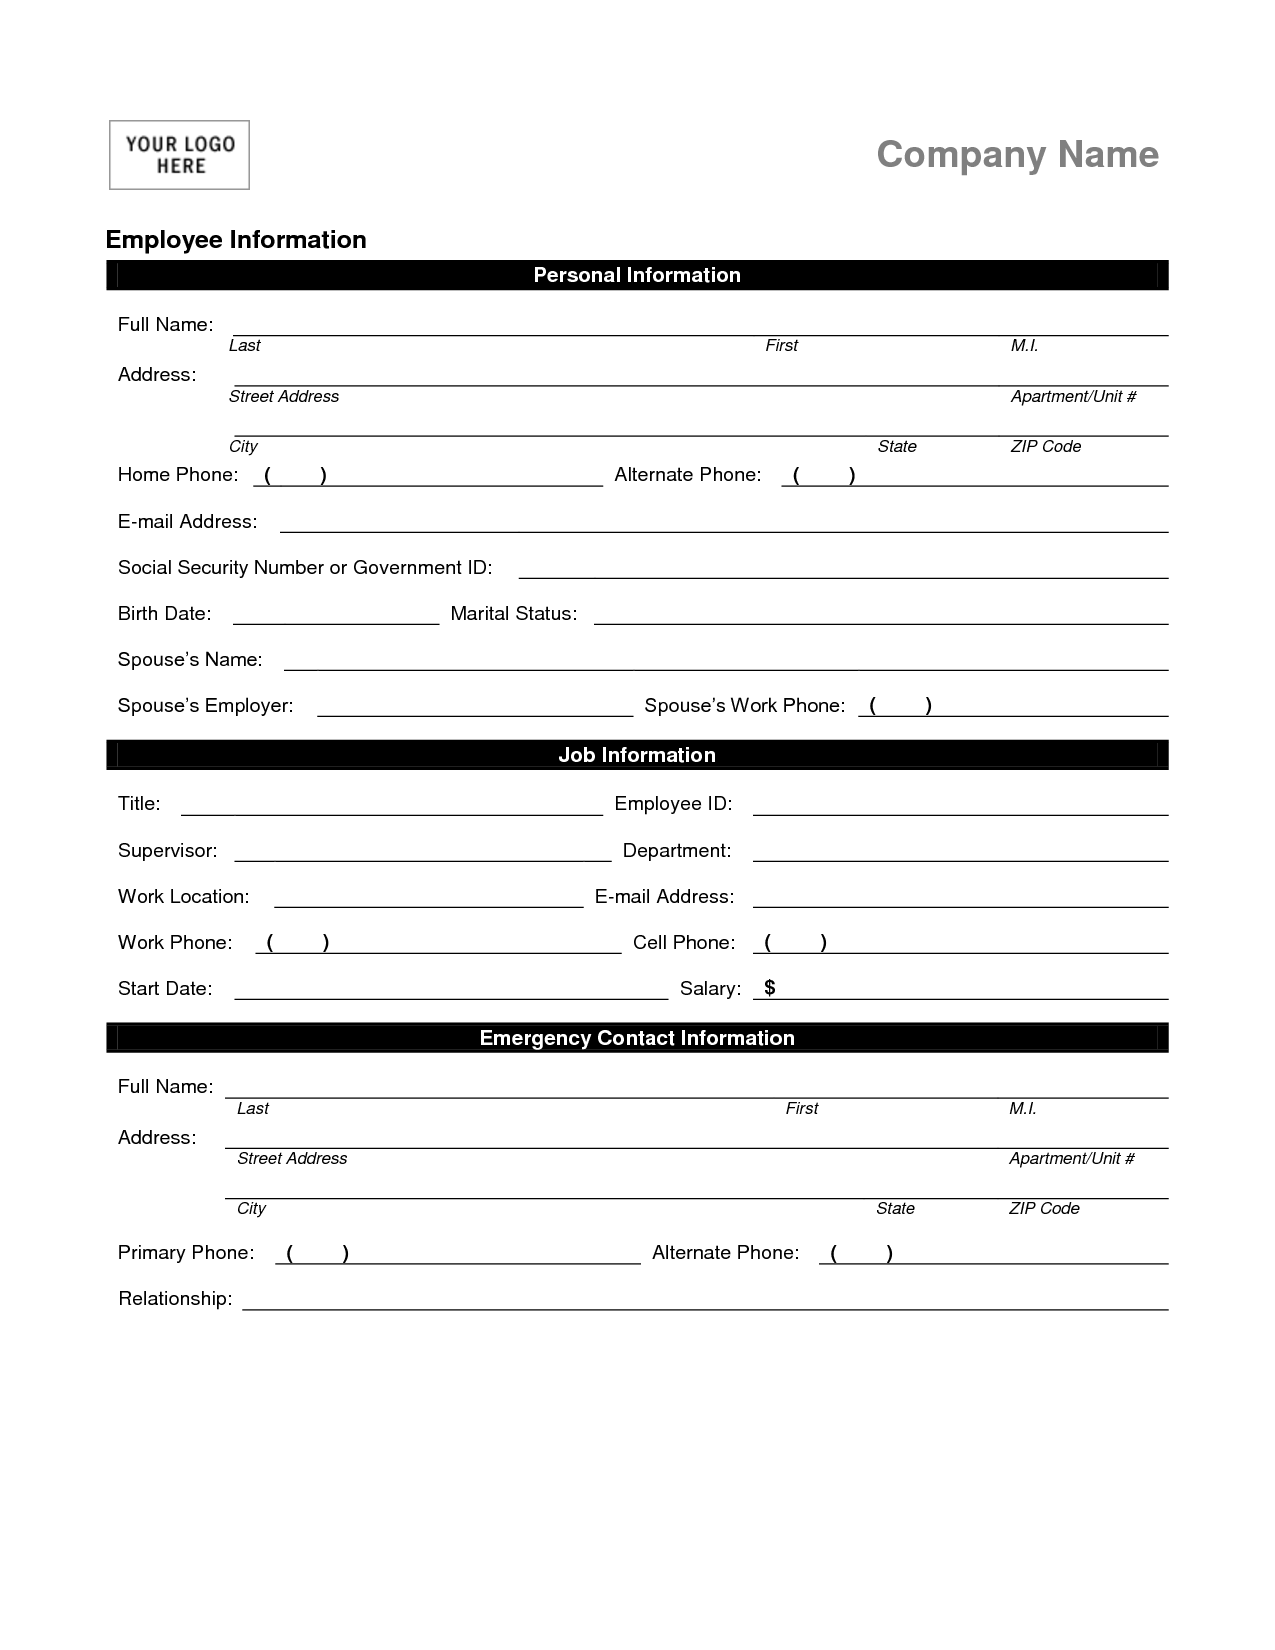 Employee Contact Info. Employee Personal Information Form Template ...